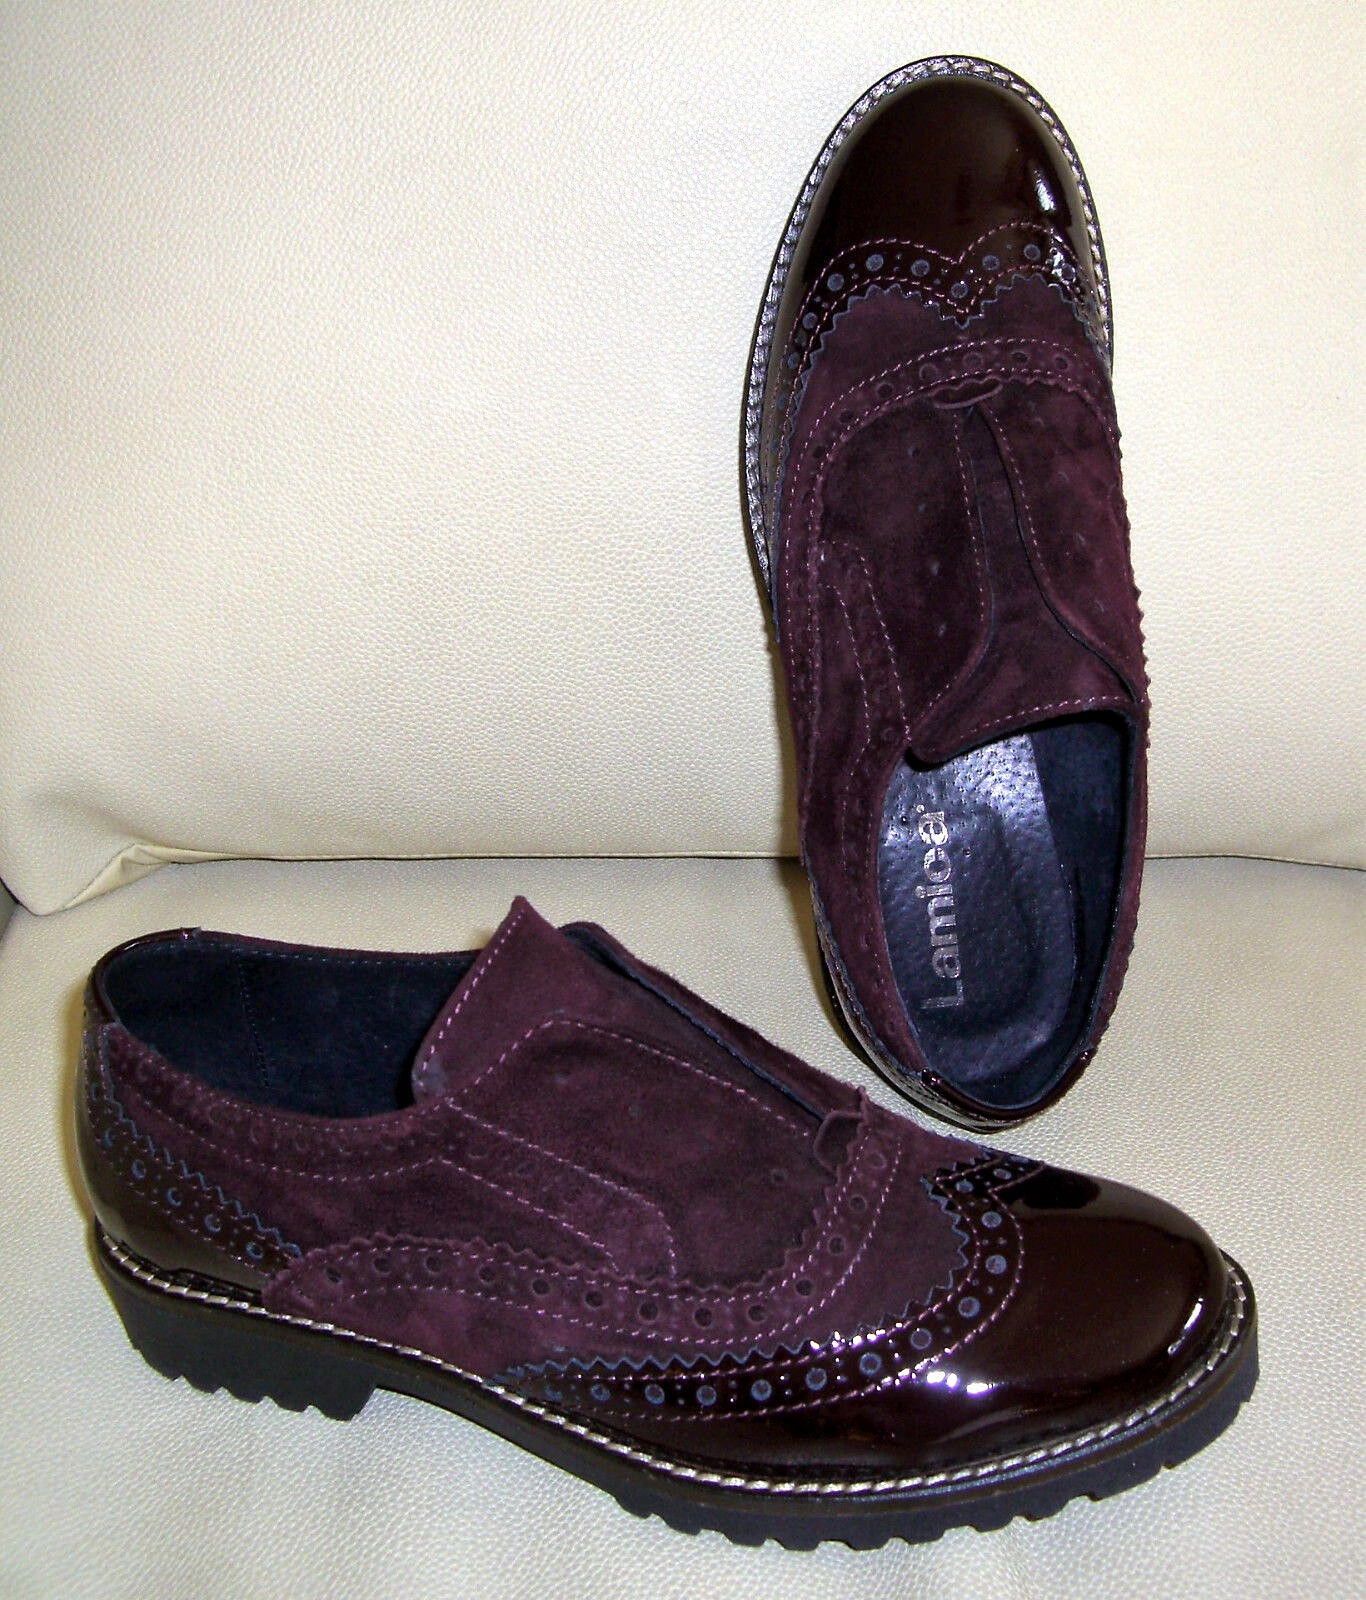 Zapatos promocionales para hombres y mujeres LAMICA Schuhe BROGUES Leder Gr. 36 Loafer Halbschuhe bordeaux weinrot rot w. NEU